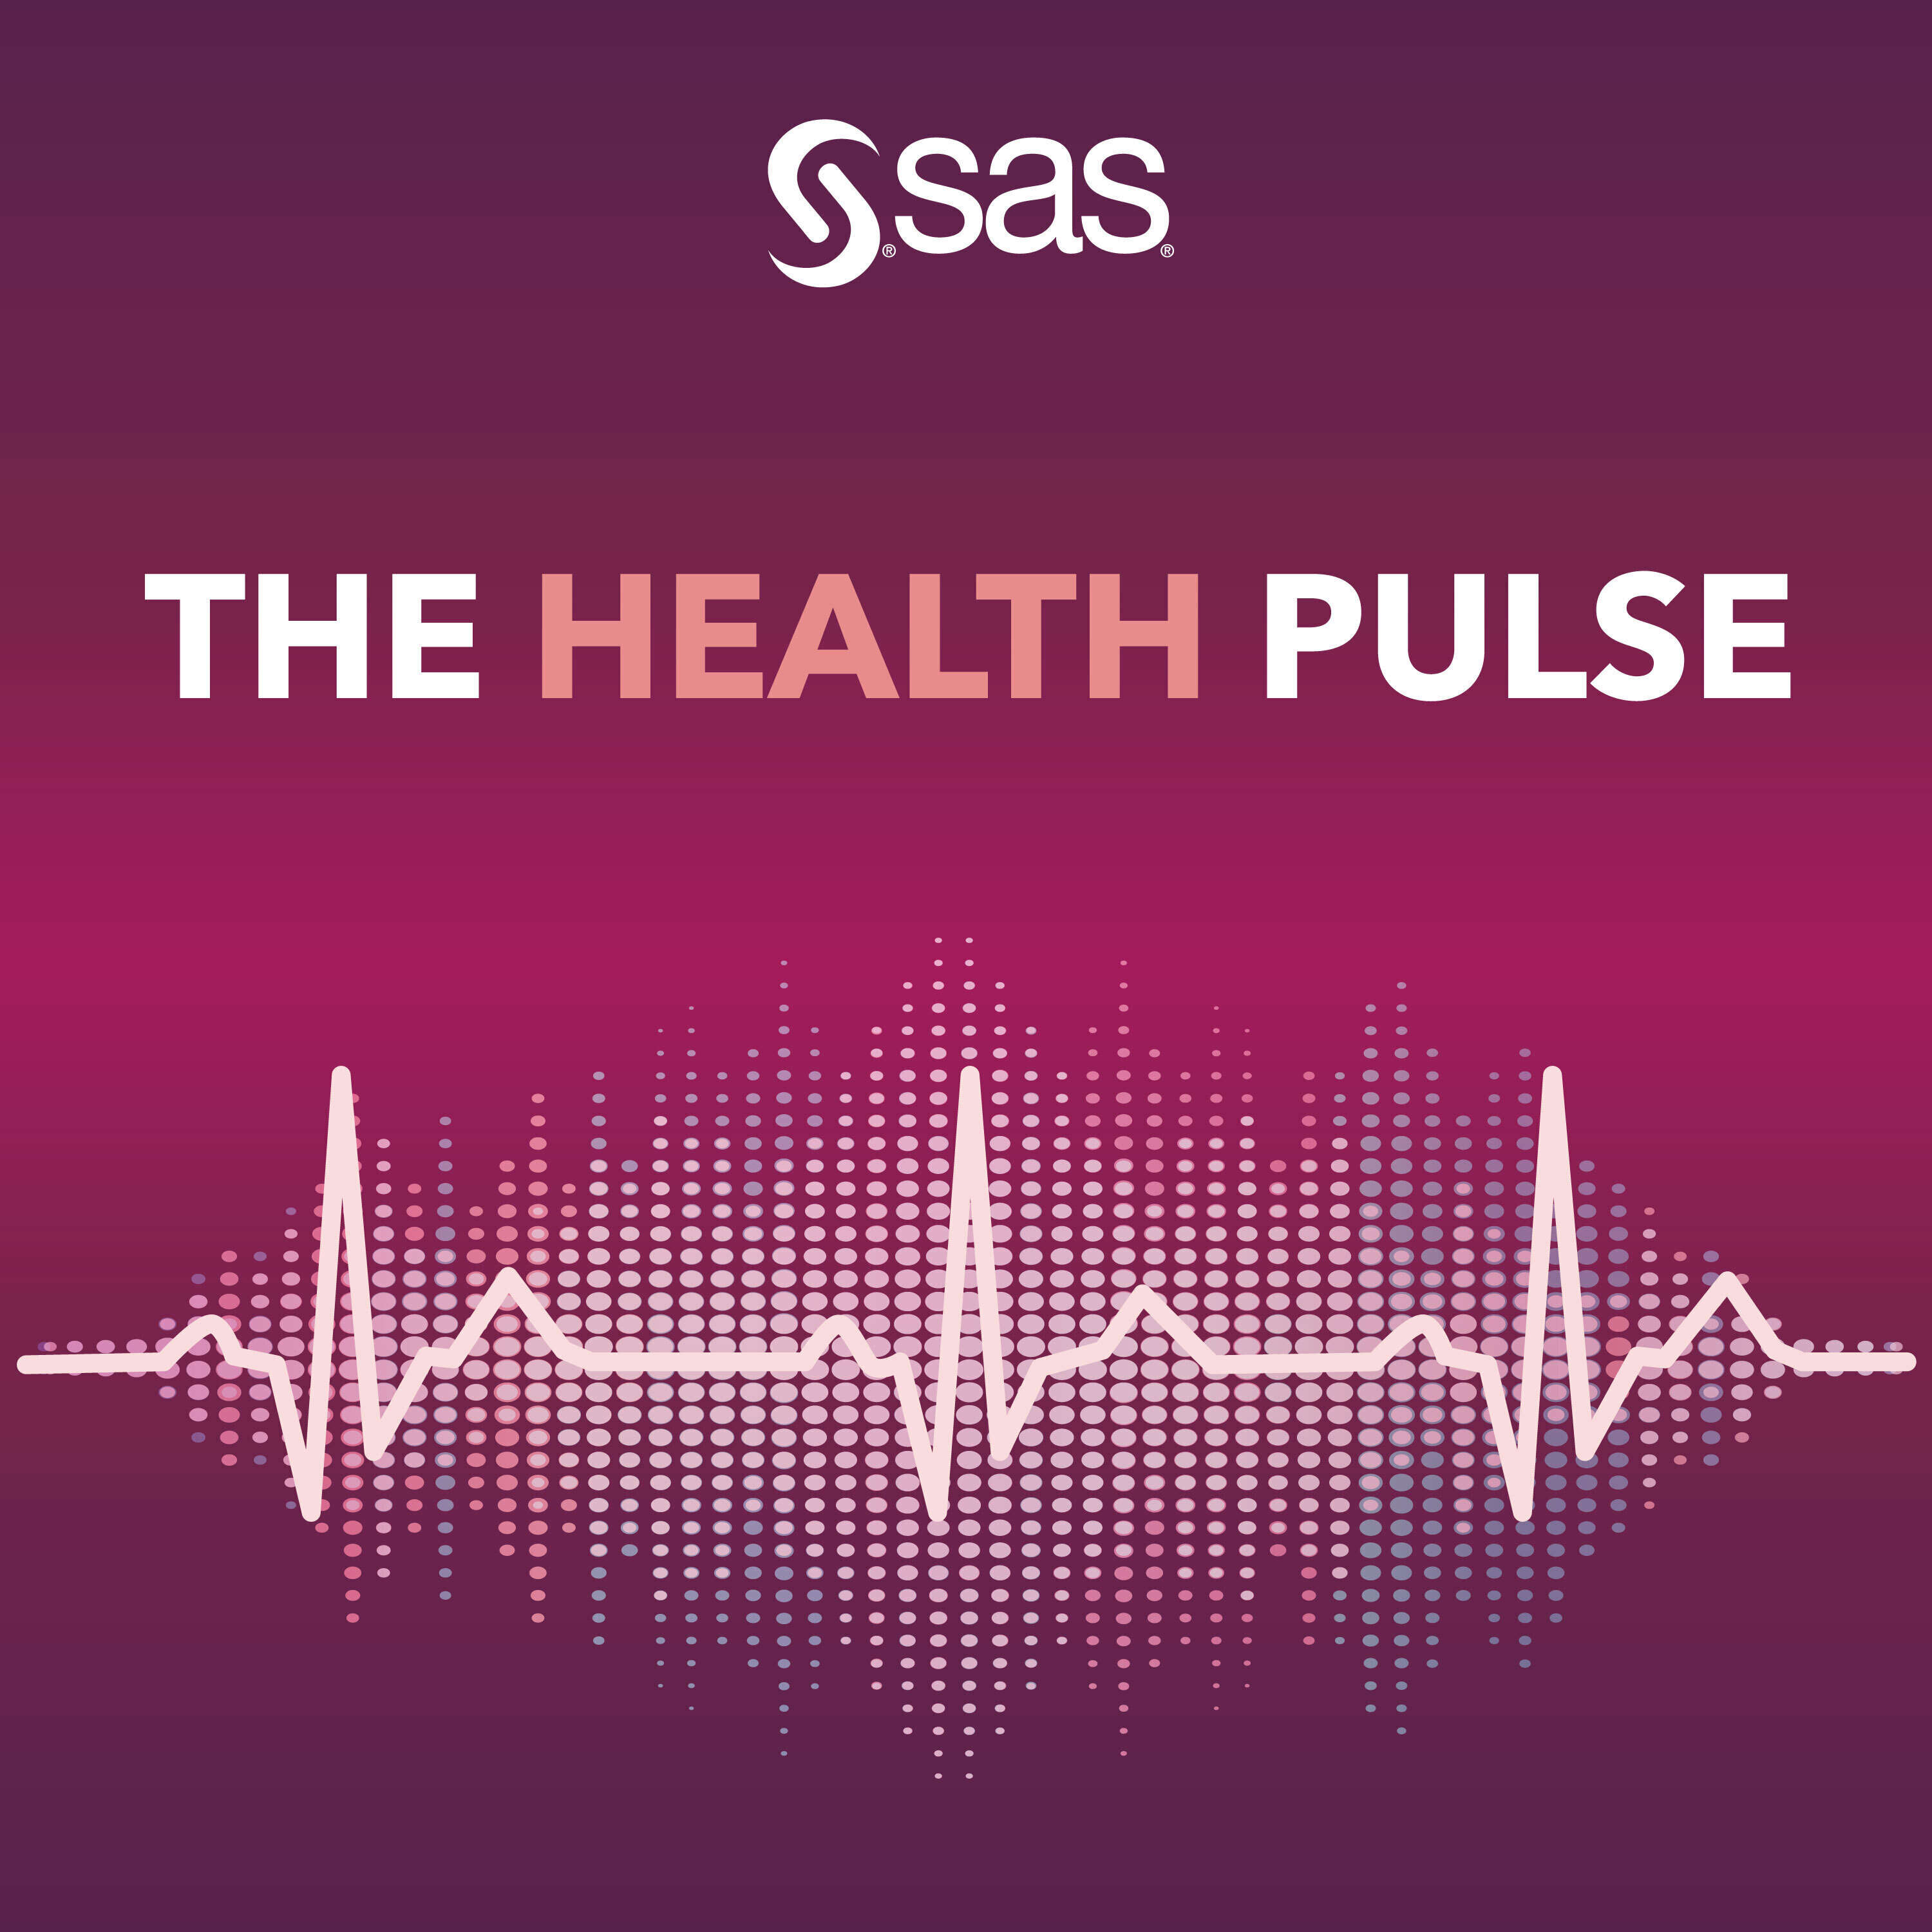 The Health Pulse: Is 'The customer is always right' the key to commercial breakthroughs in pharma?